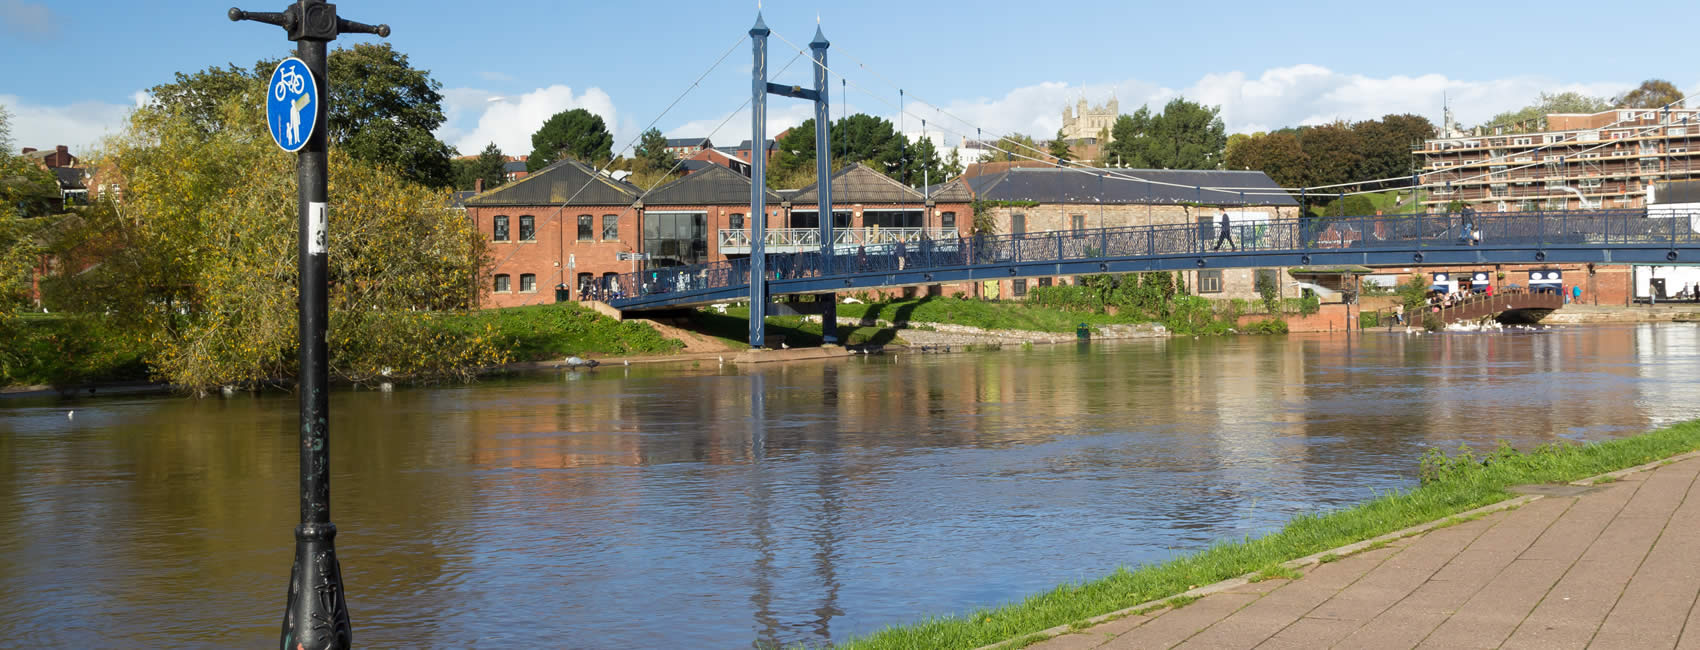 Bridge and city view of Exeter